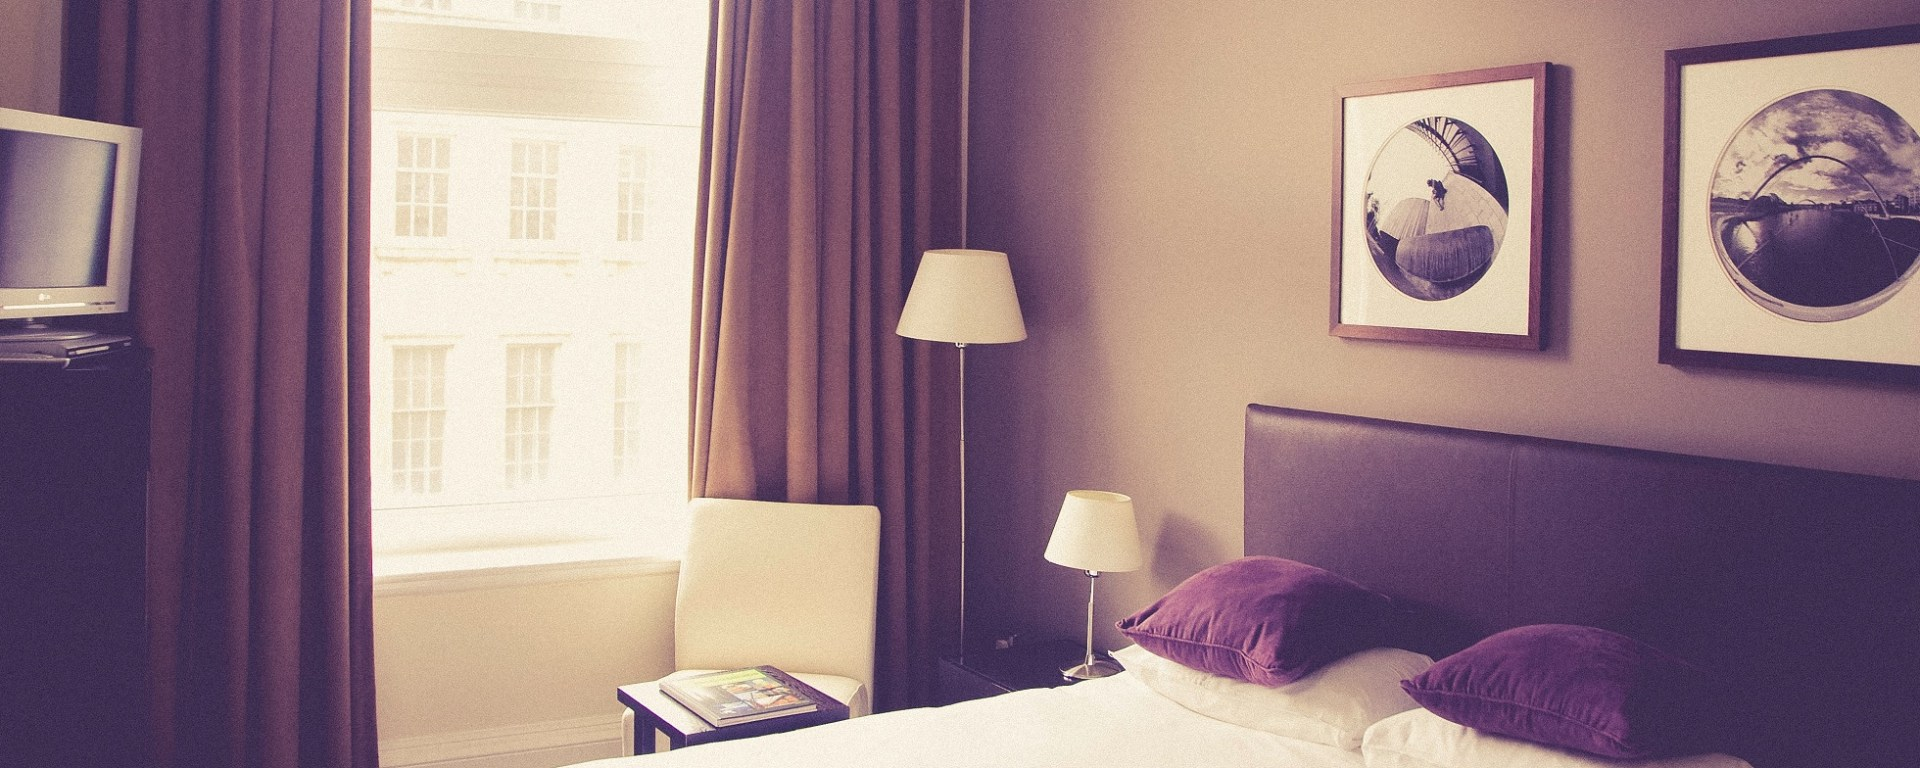 hotel room with drapes